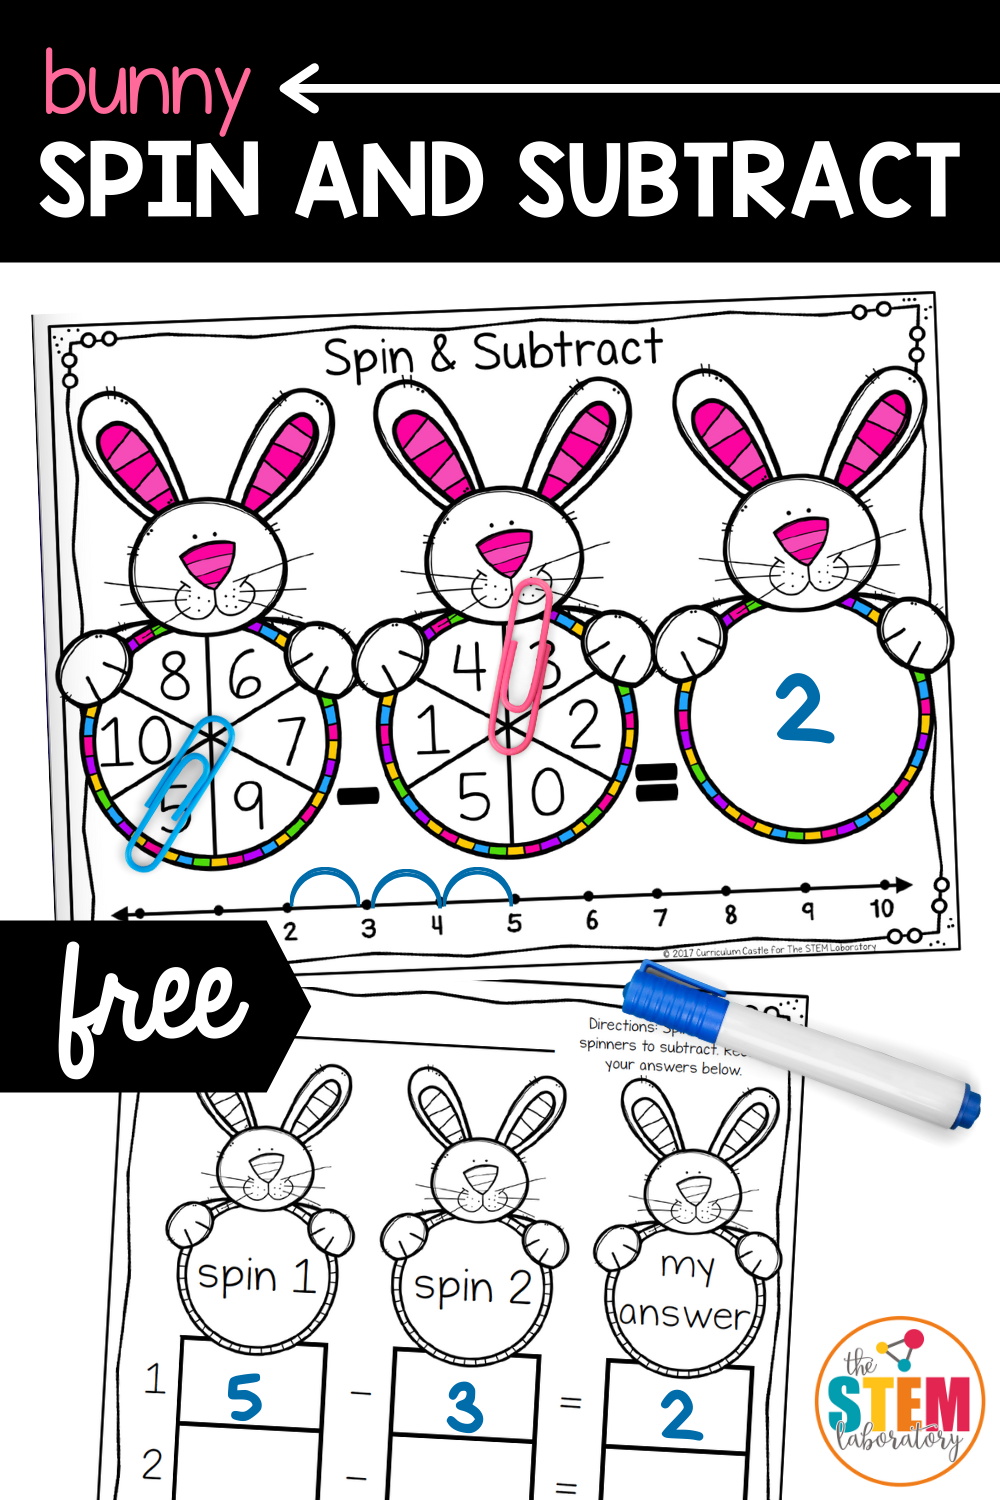 Bunny Spin and Subtract Game